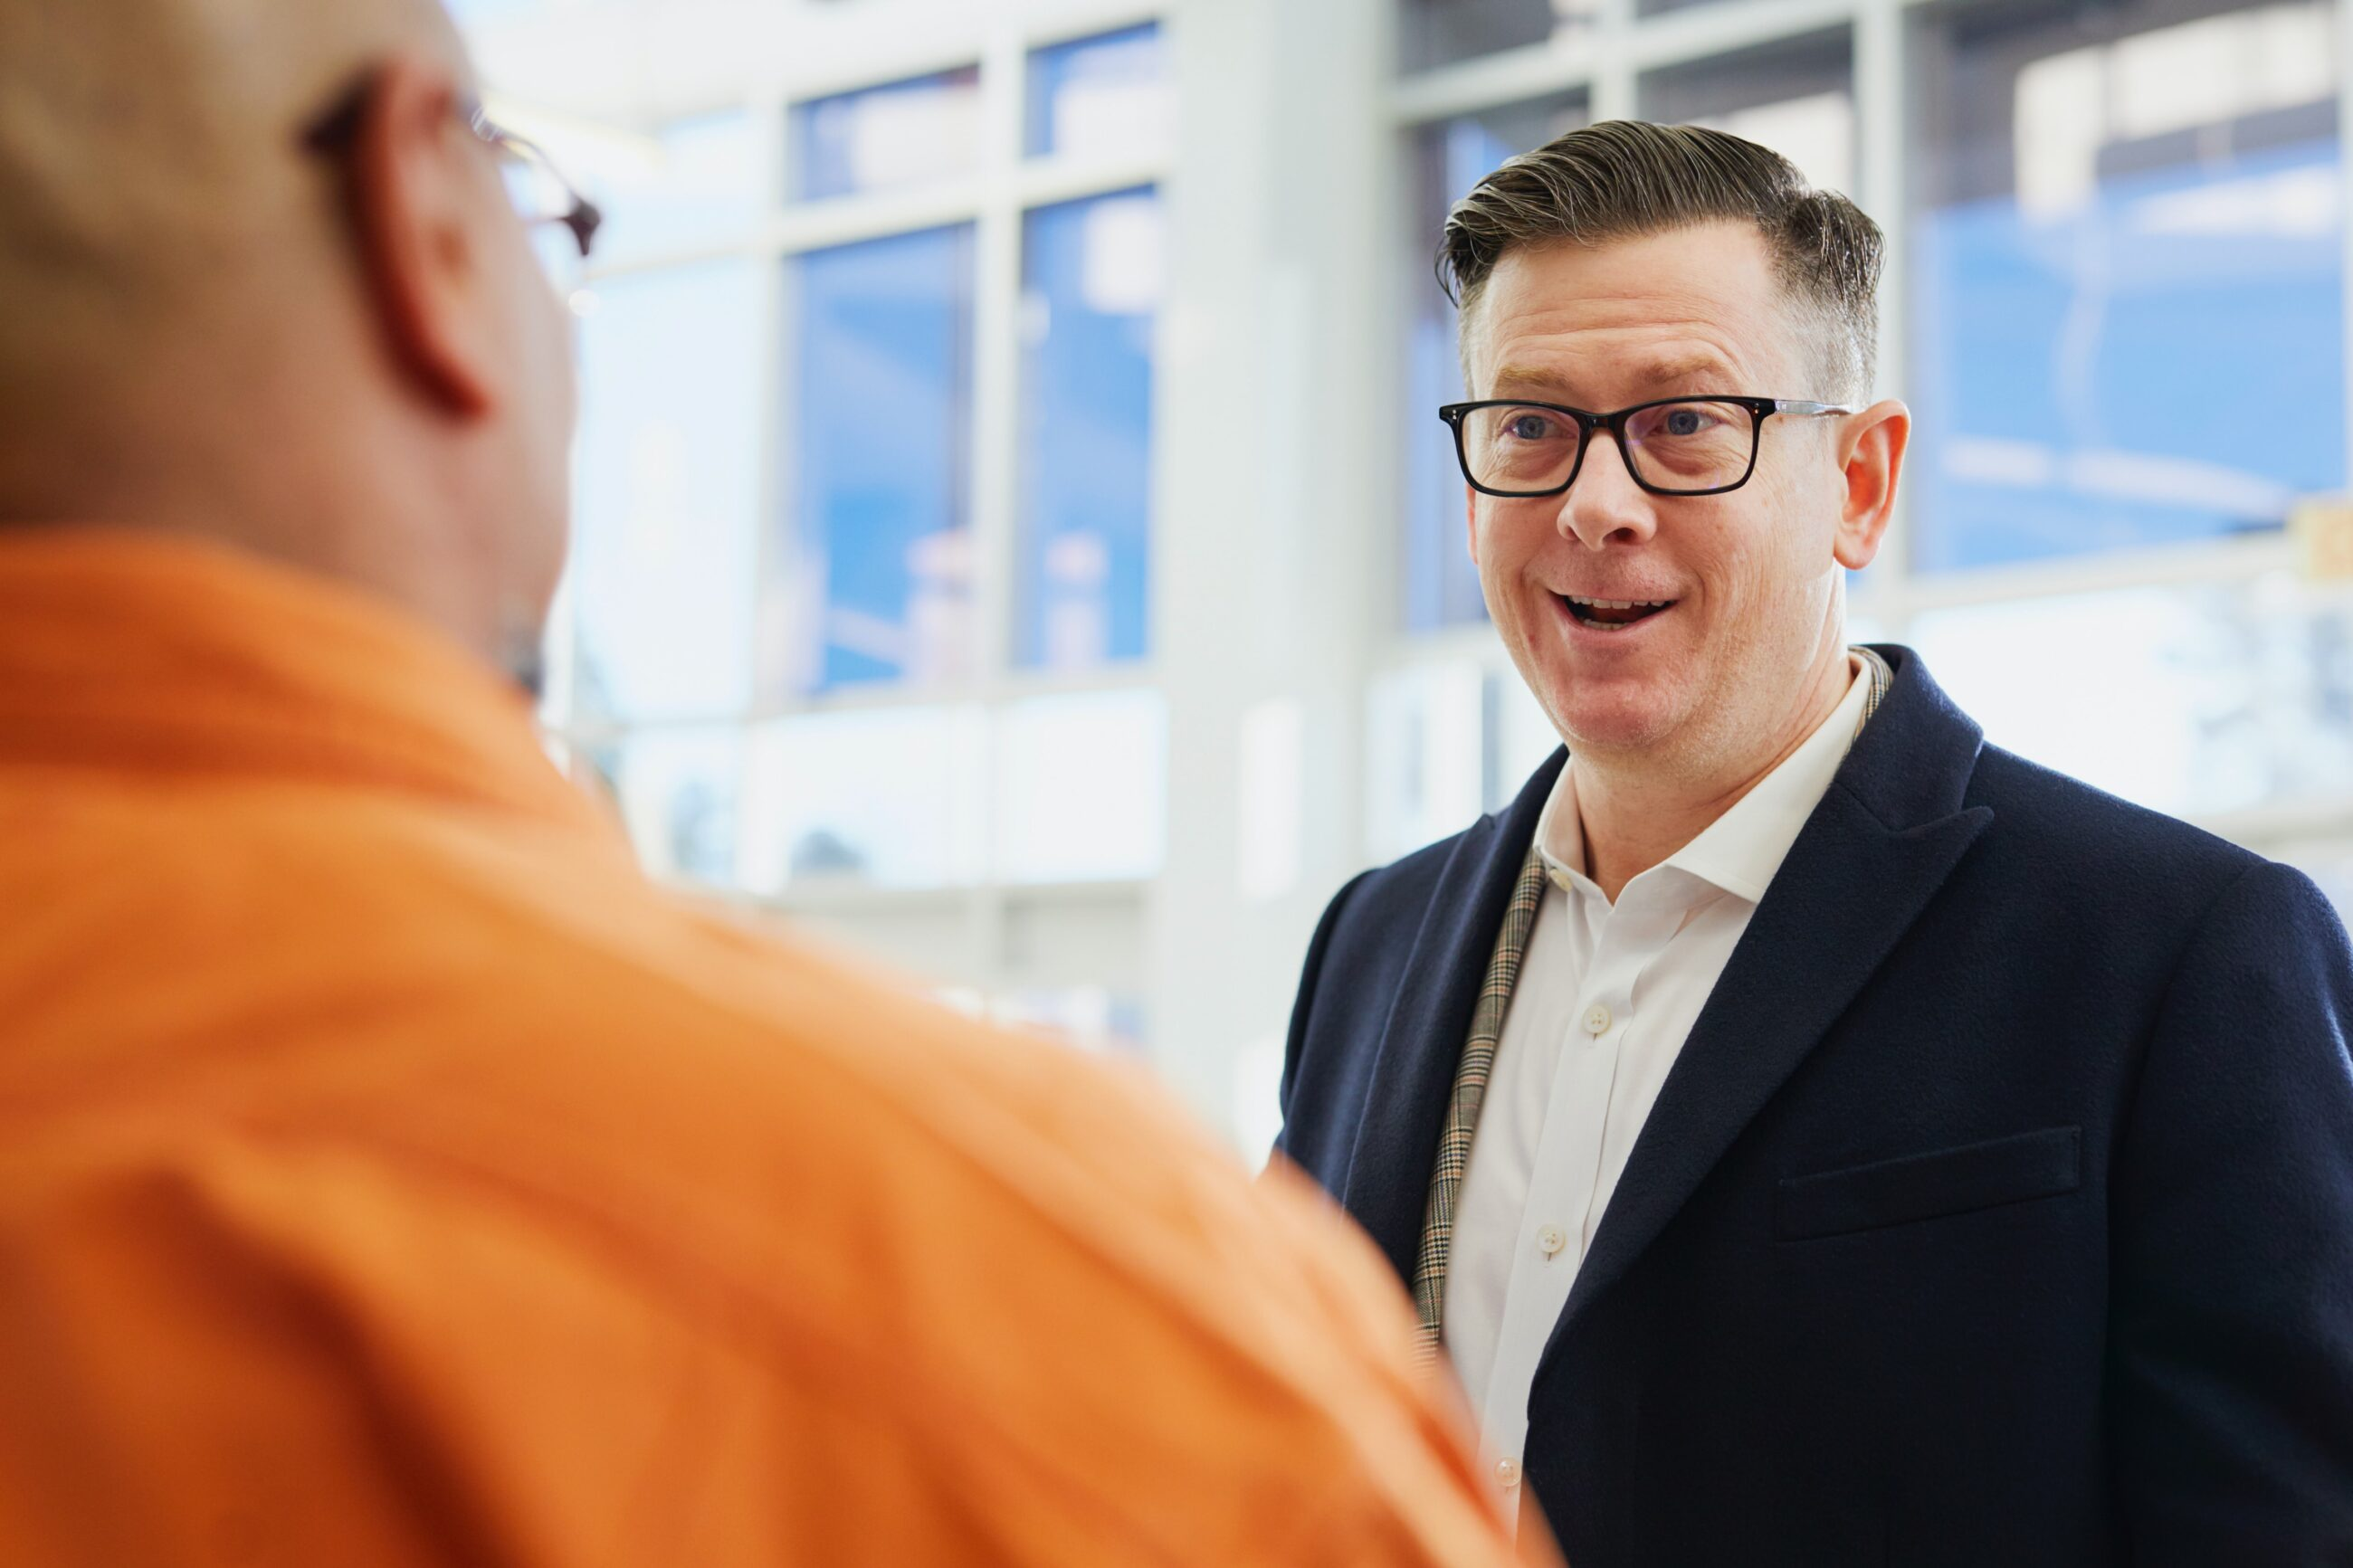 man in black suit and white shirt speaks to a man in an orange shirt with his back to the camera